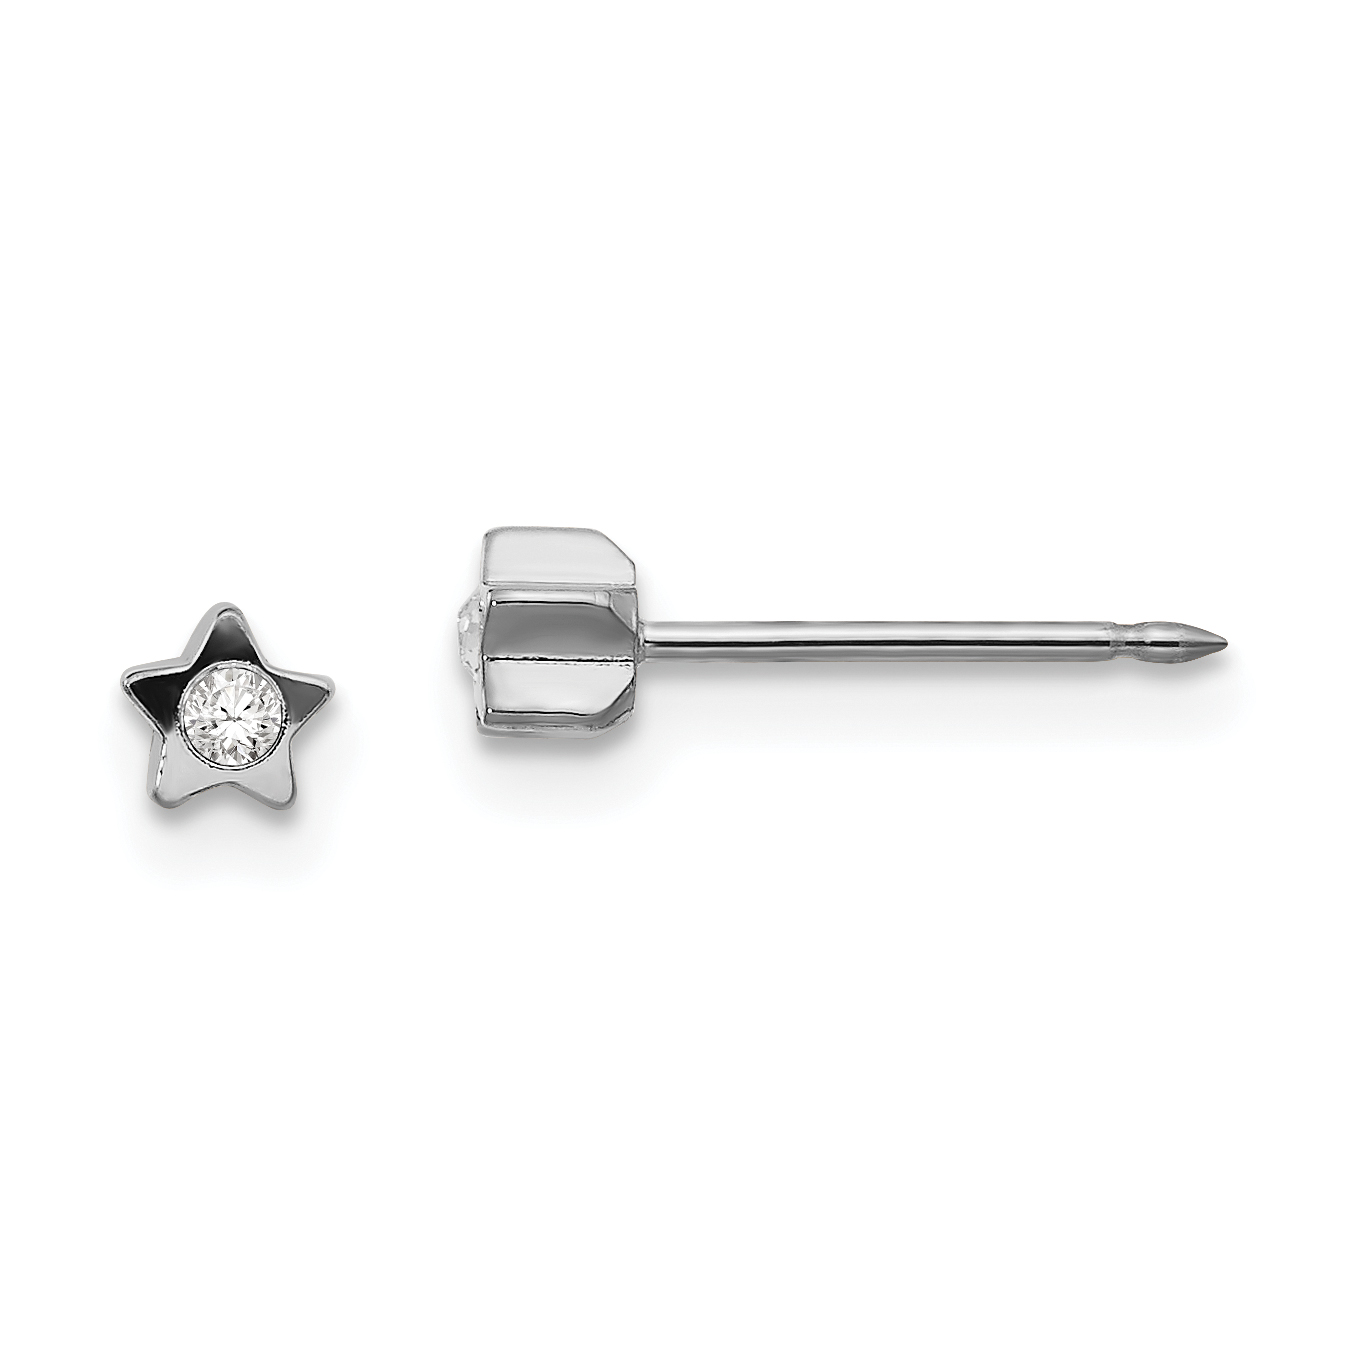 Childrens Inverness 24K Yellow-Plated 5 MM CZ Post Stud Earrings